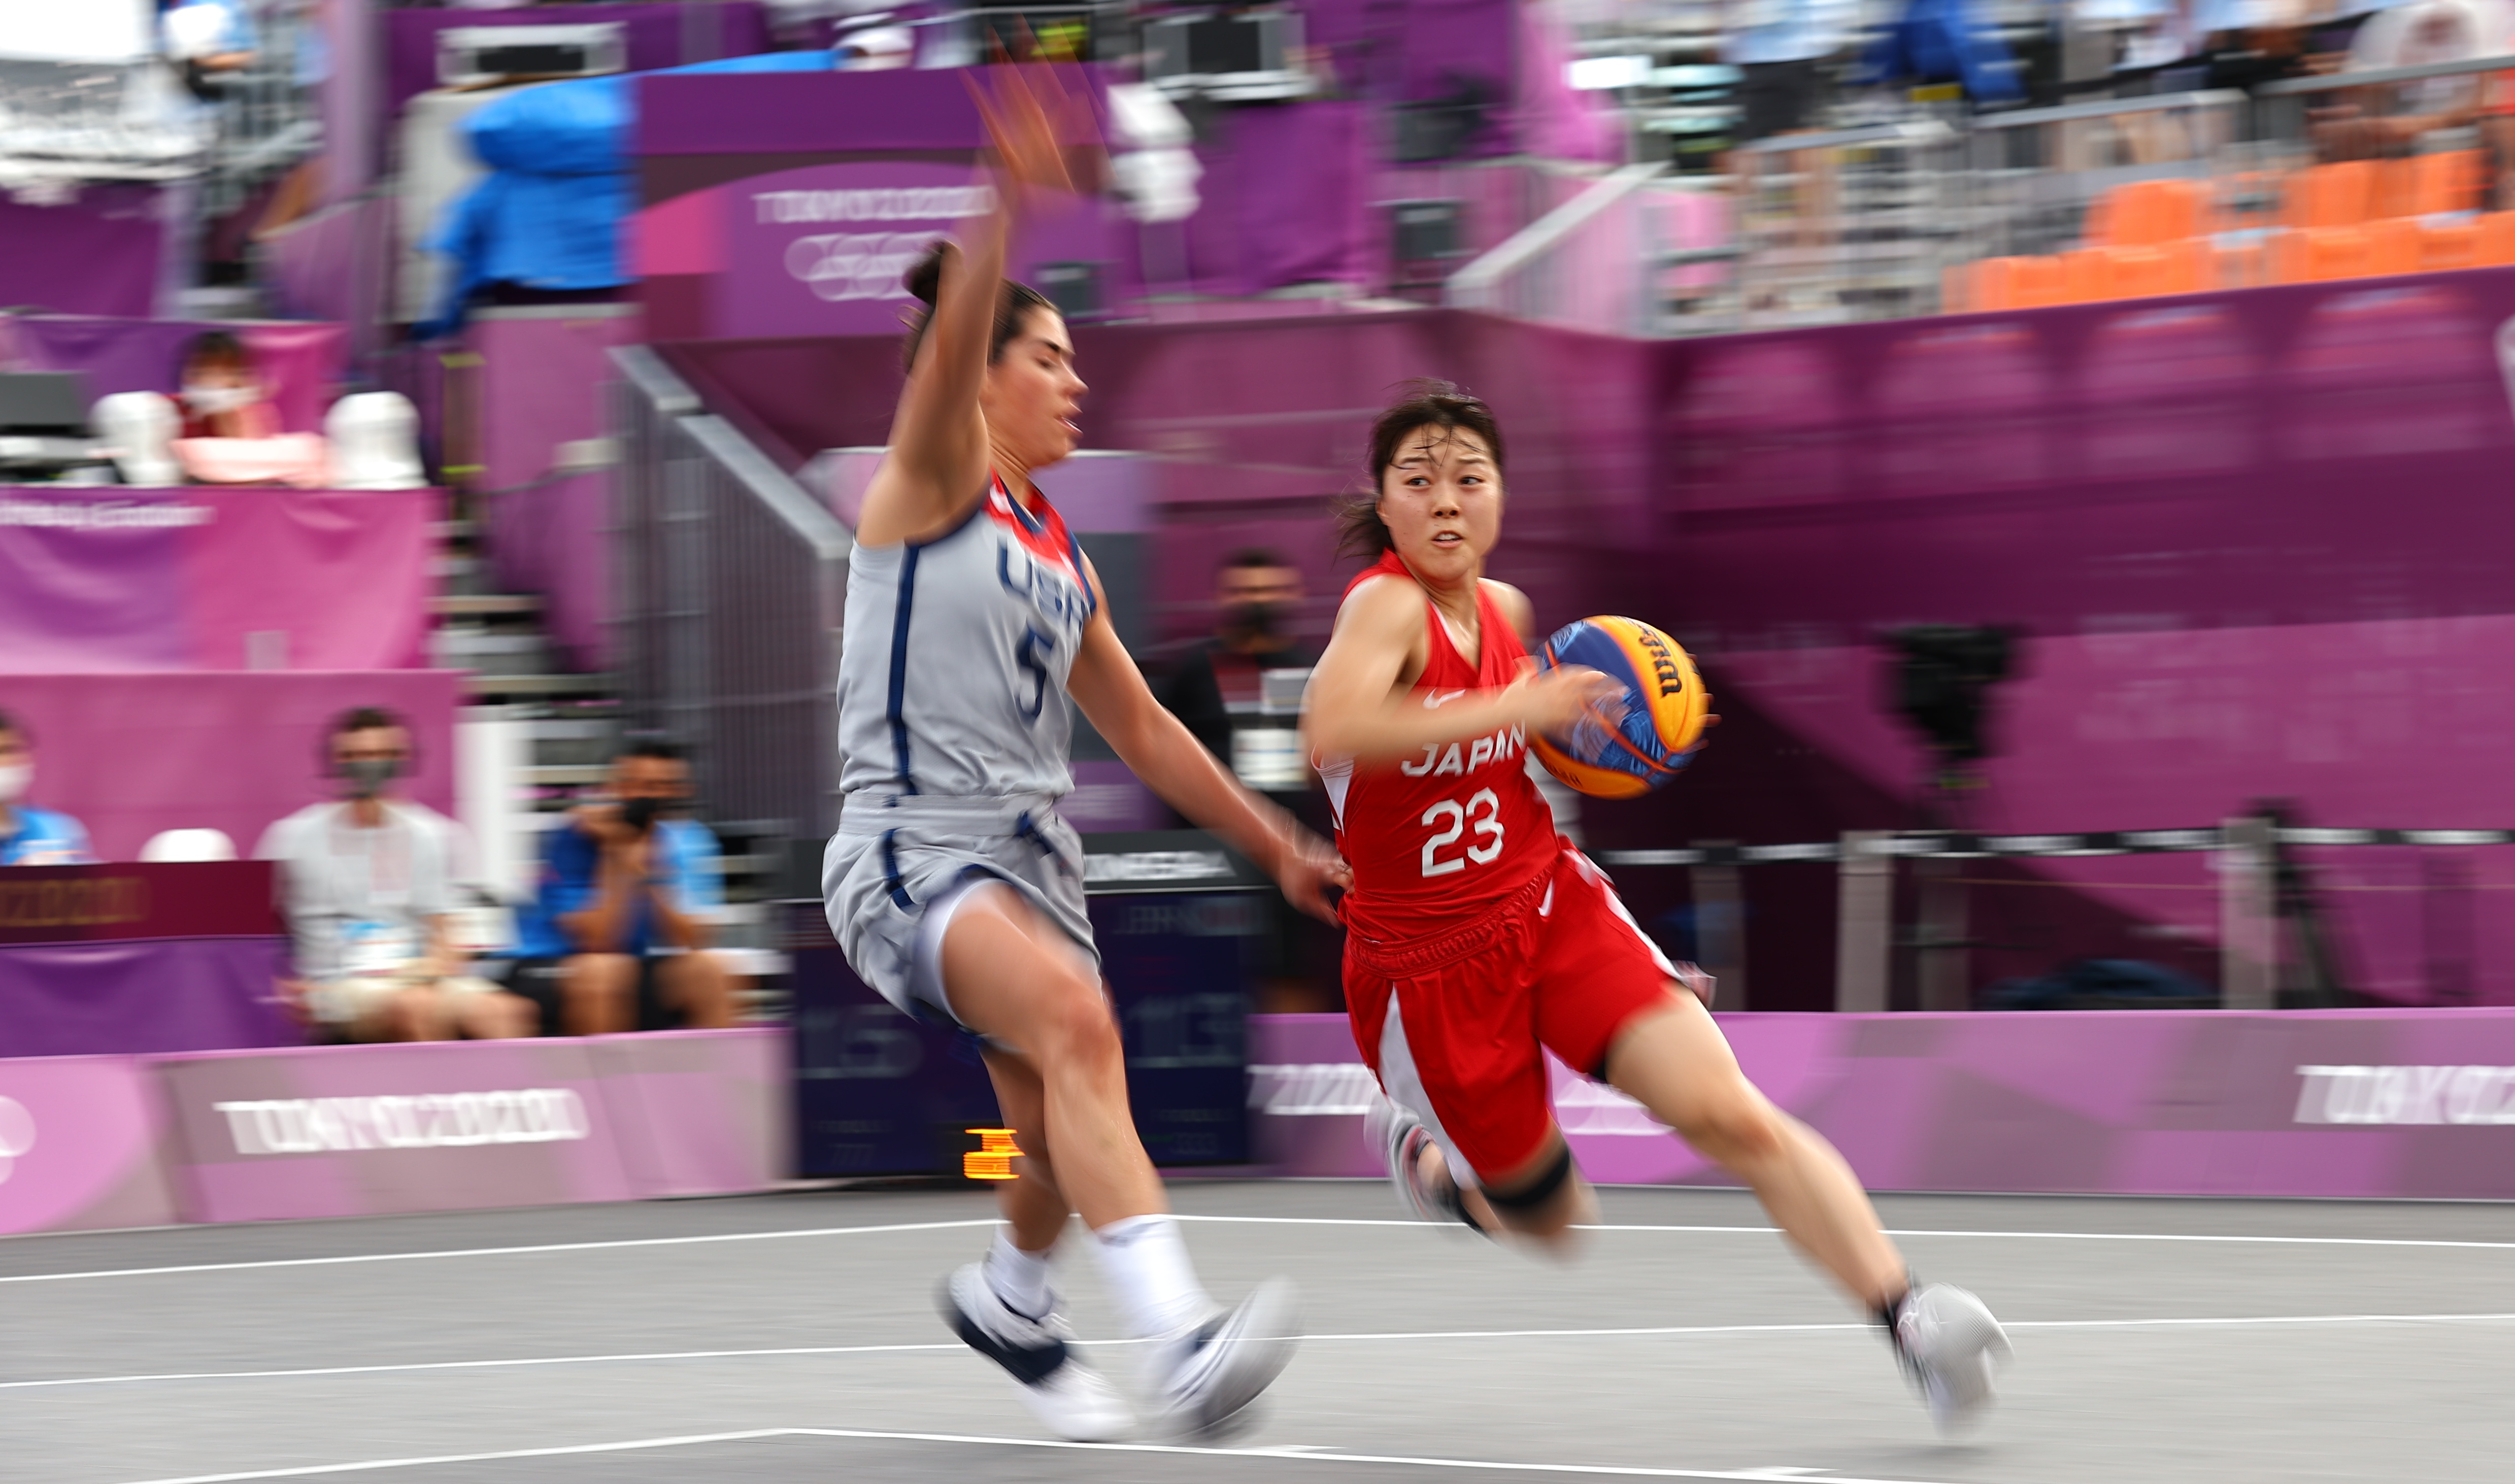 Tokyo 2020 Olympics - Basketball 3x3 - Women - Pool A - United States v Japan - Aomi Urban Sports Park, Tokyo, Japan - July 27, 2021. Mai Yamamoto of Japan in action with Kelsey Plum of the United States during a match. REUTERS/Andrew Boyers